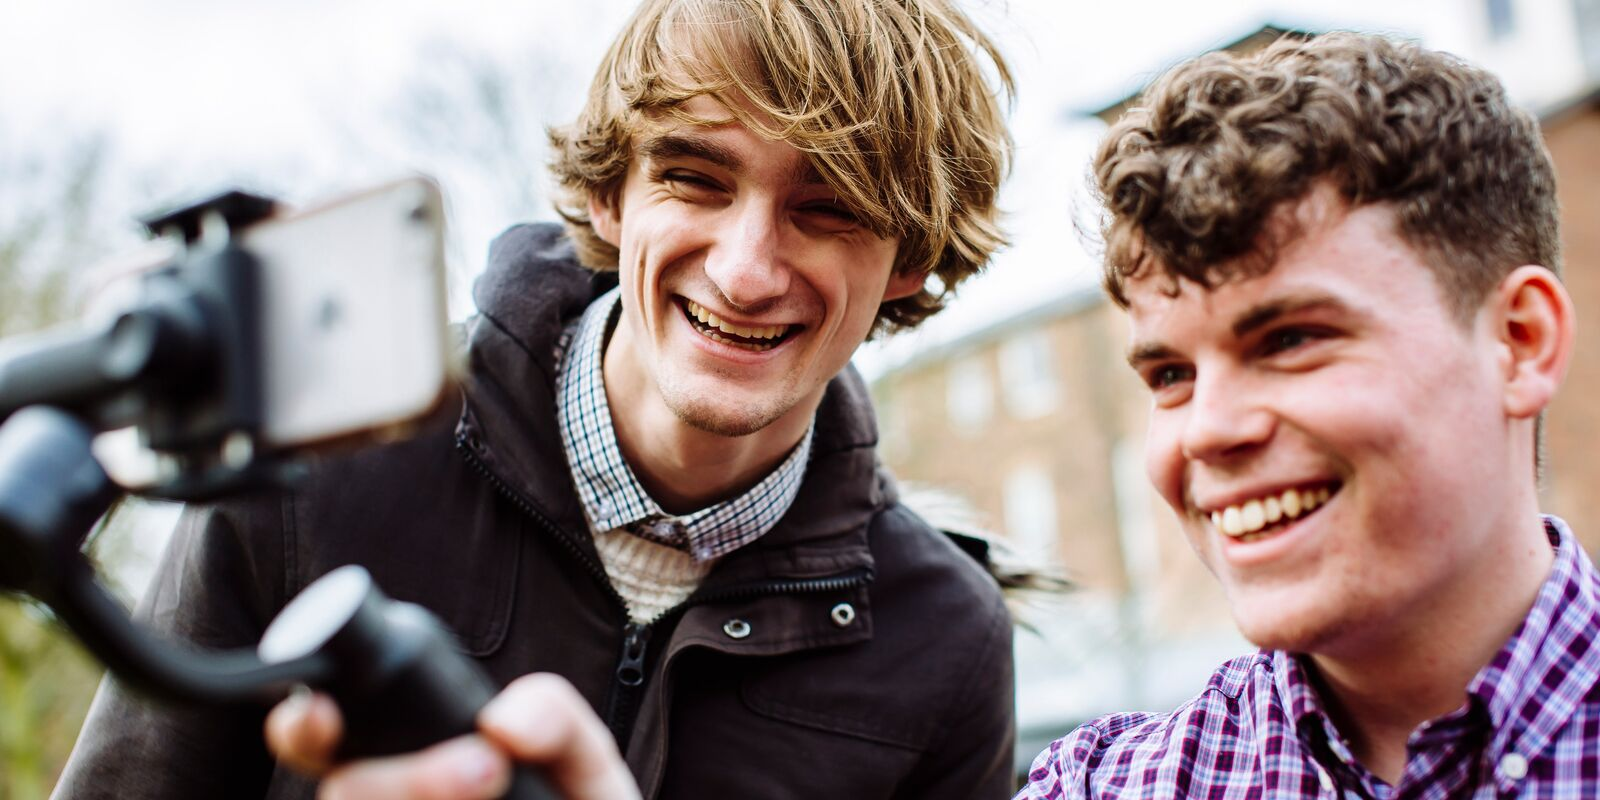 2 students smiling back a smartphone on selfie-stick